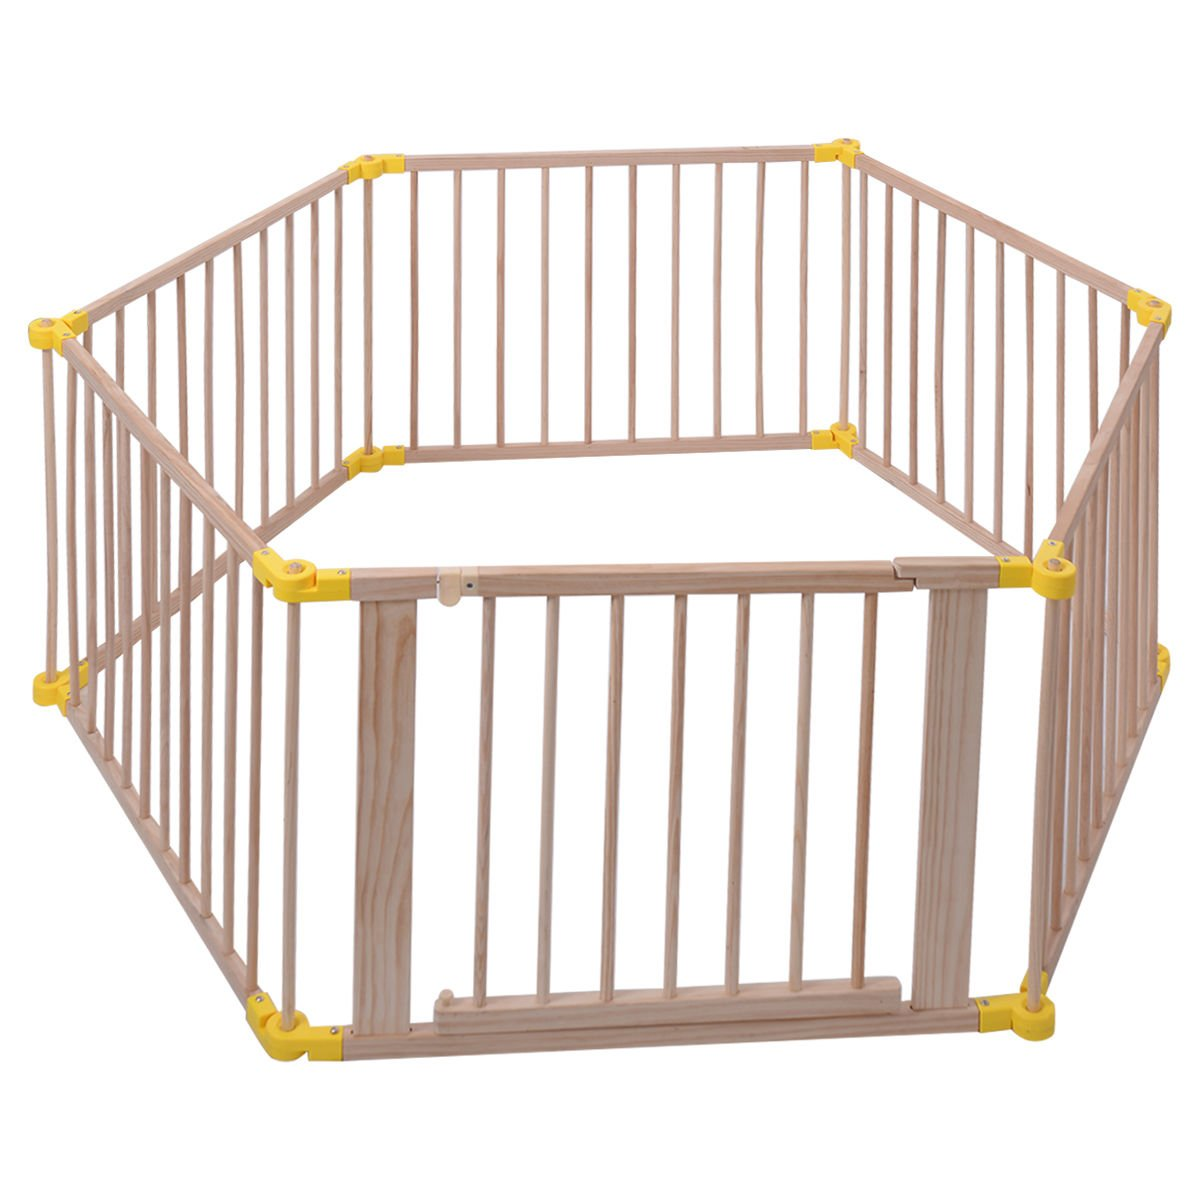 Wood Solid Pine Wood Baby Playpen With Ebook